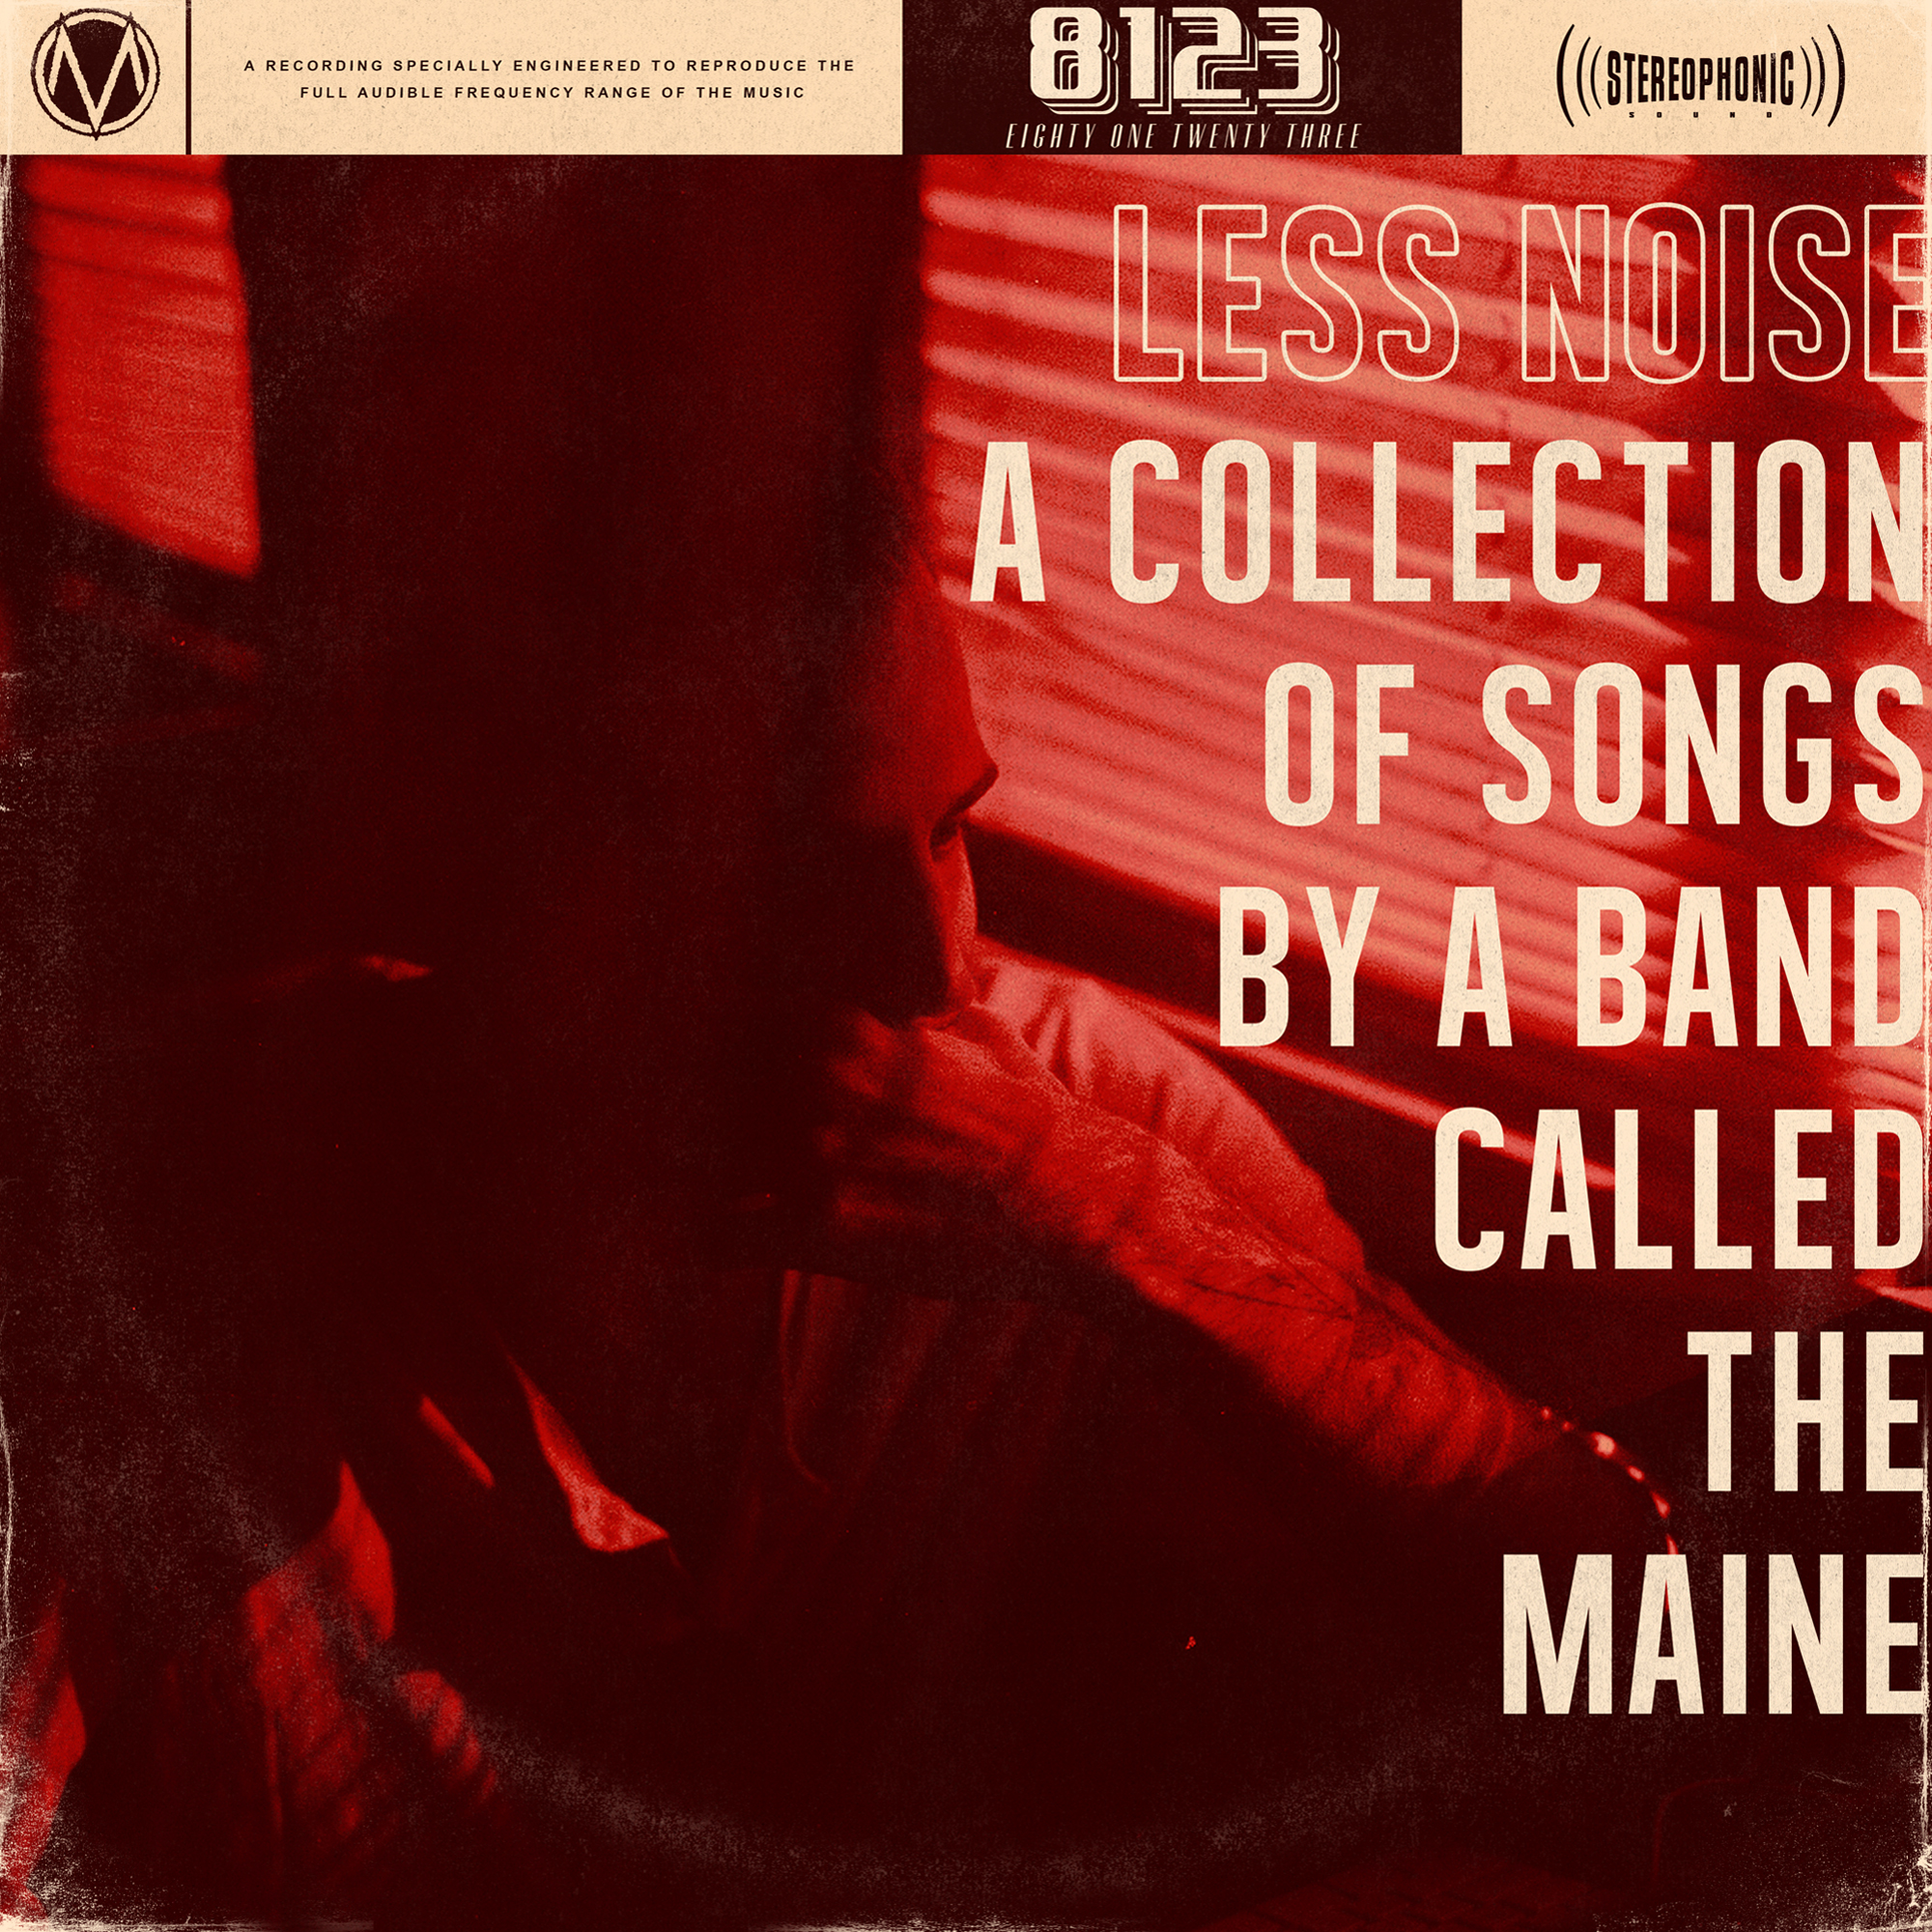 THE MAINE // LESS NOISE: A COLLECTION OF SONGS BY A BAND CALLED THE MAINE // 8123 // LP  MIXING//MASTERING